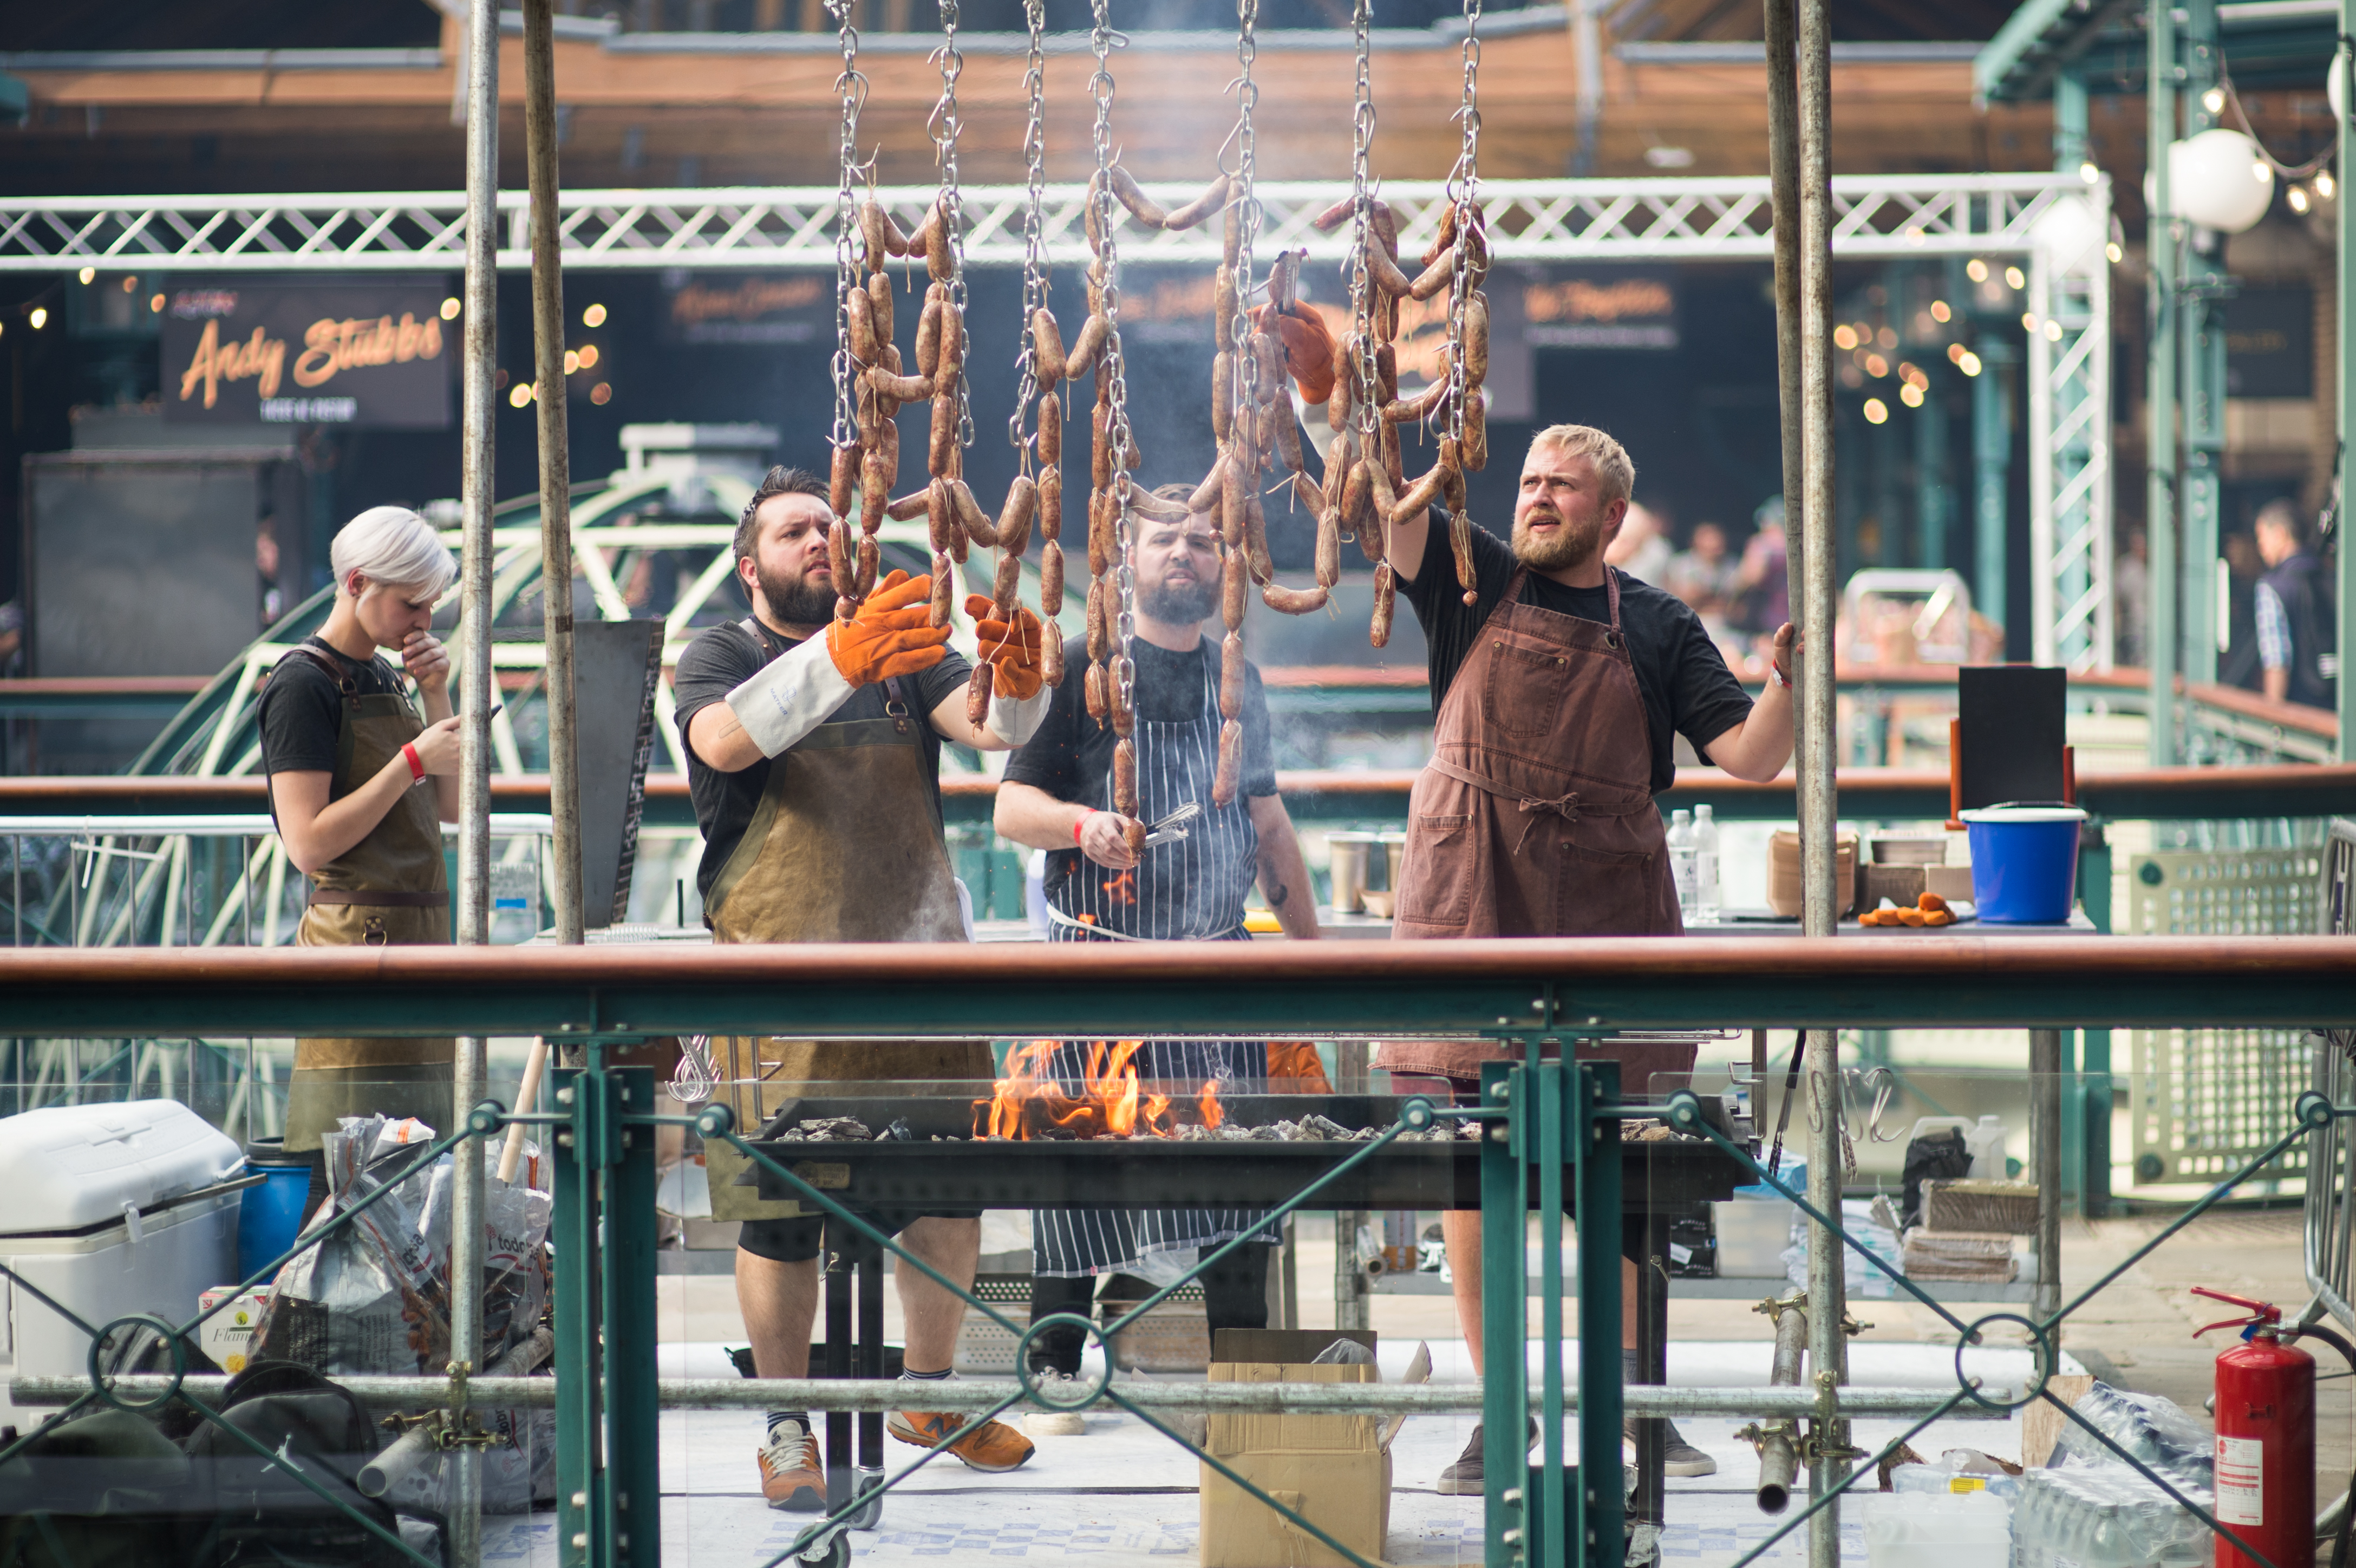 Chefs hanging meat at Meatopia (Meatopia/PA)